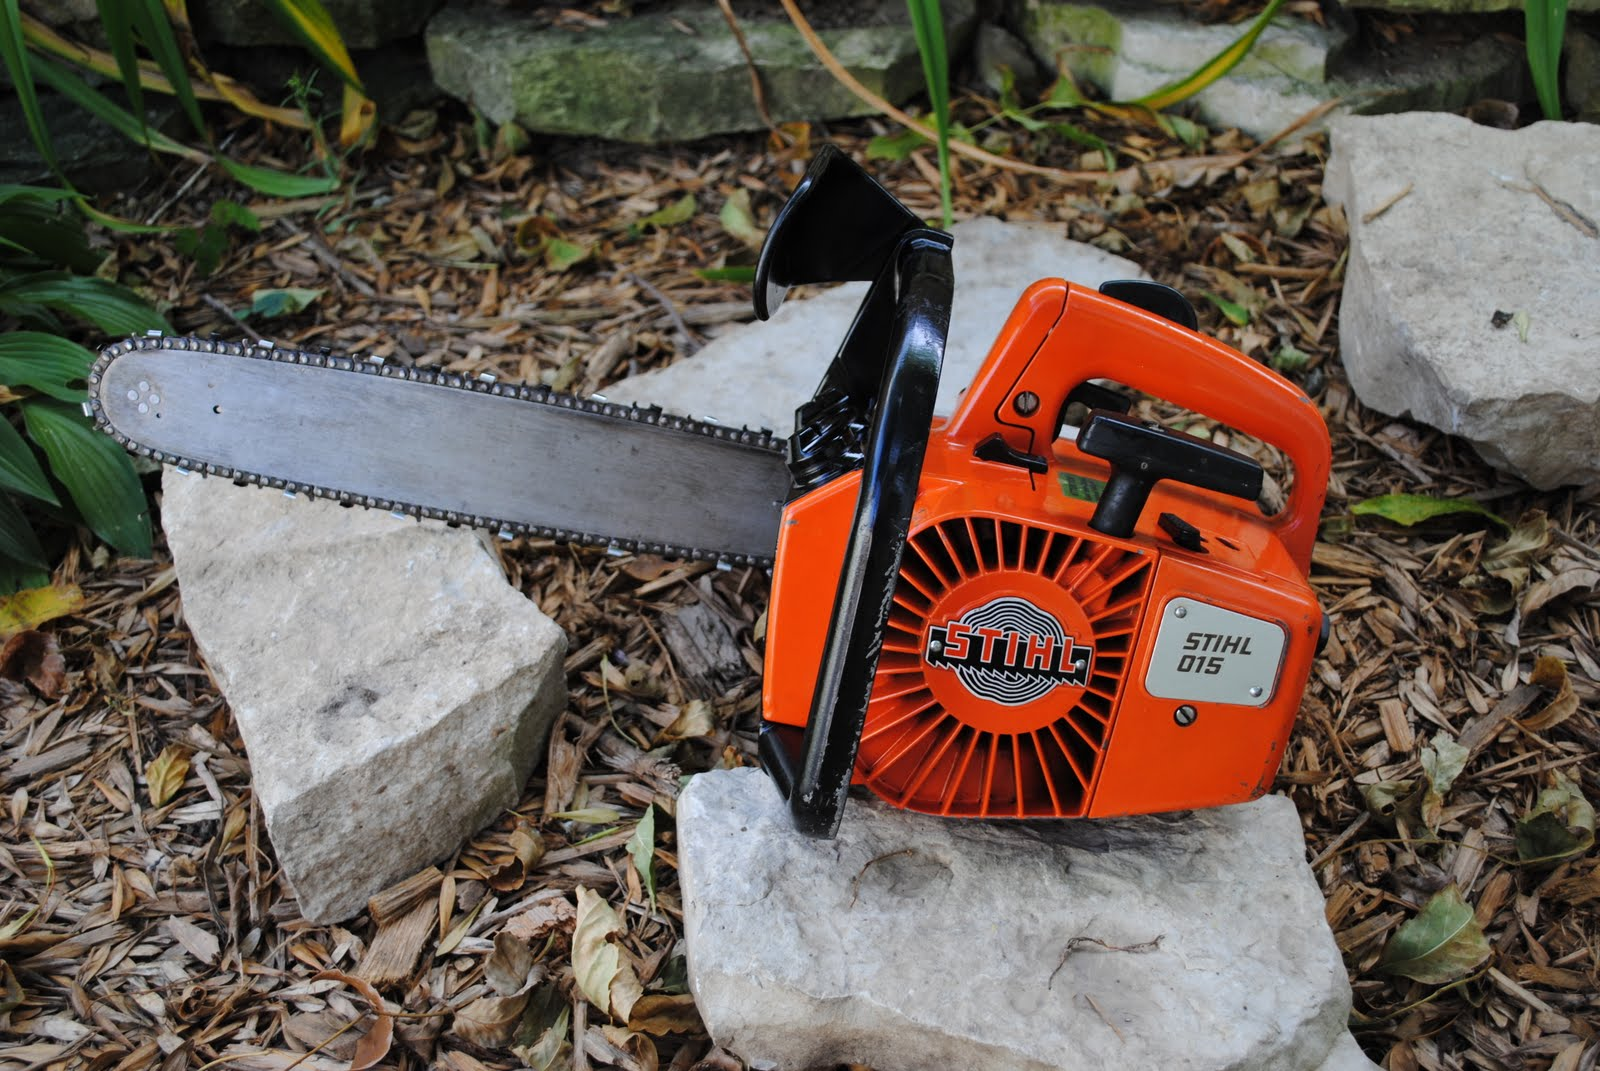 Stihl 015 chainsaw For Sale manuals